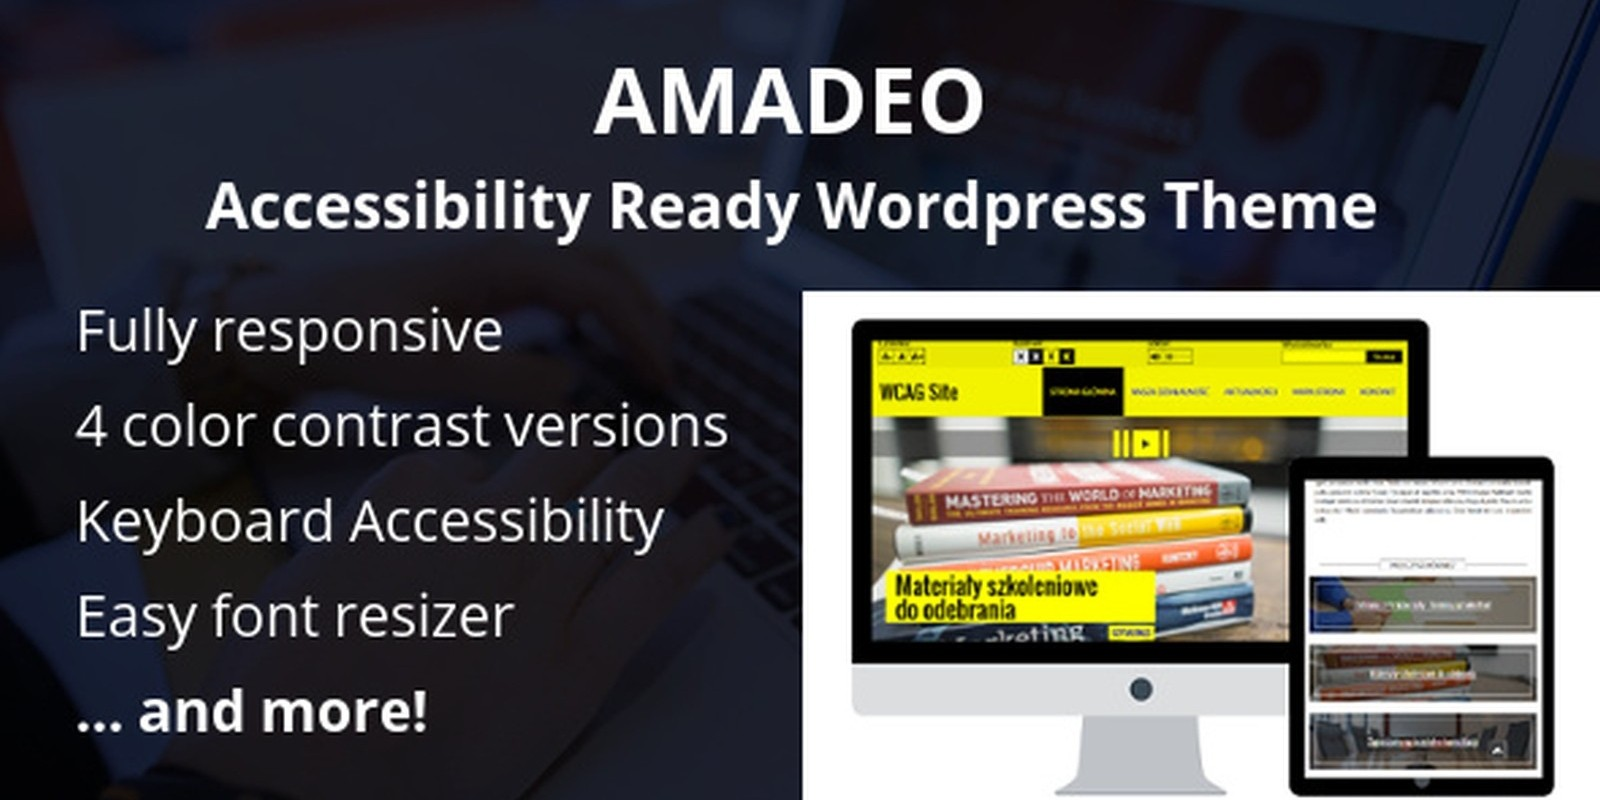 Amadeo Pro - Accessibility Ready WordPress Theme